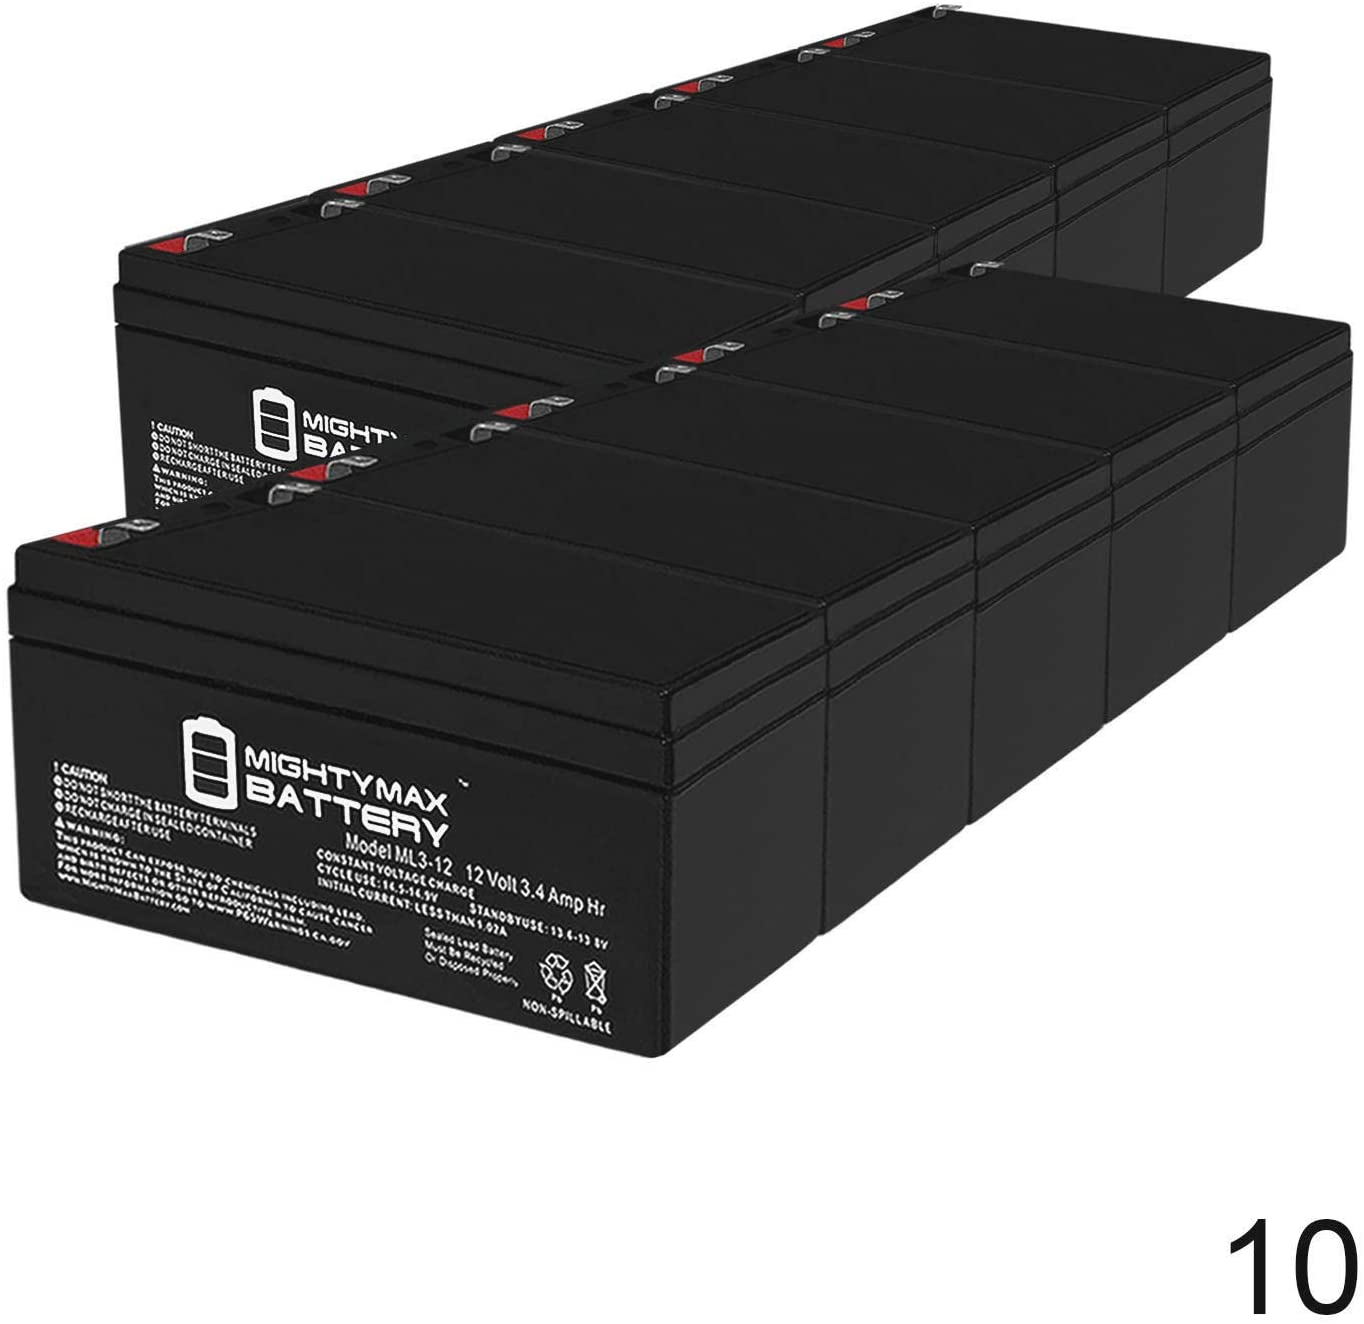 12V 3.4Ah Replacement Battery for CyberPower SL 325SL - 10 Pack